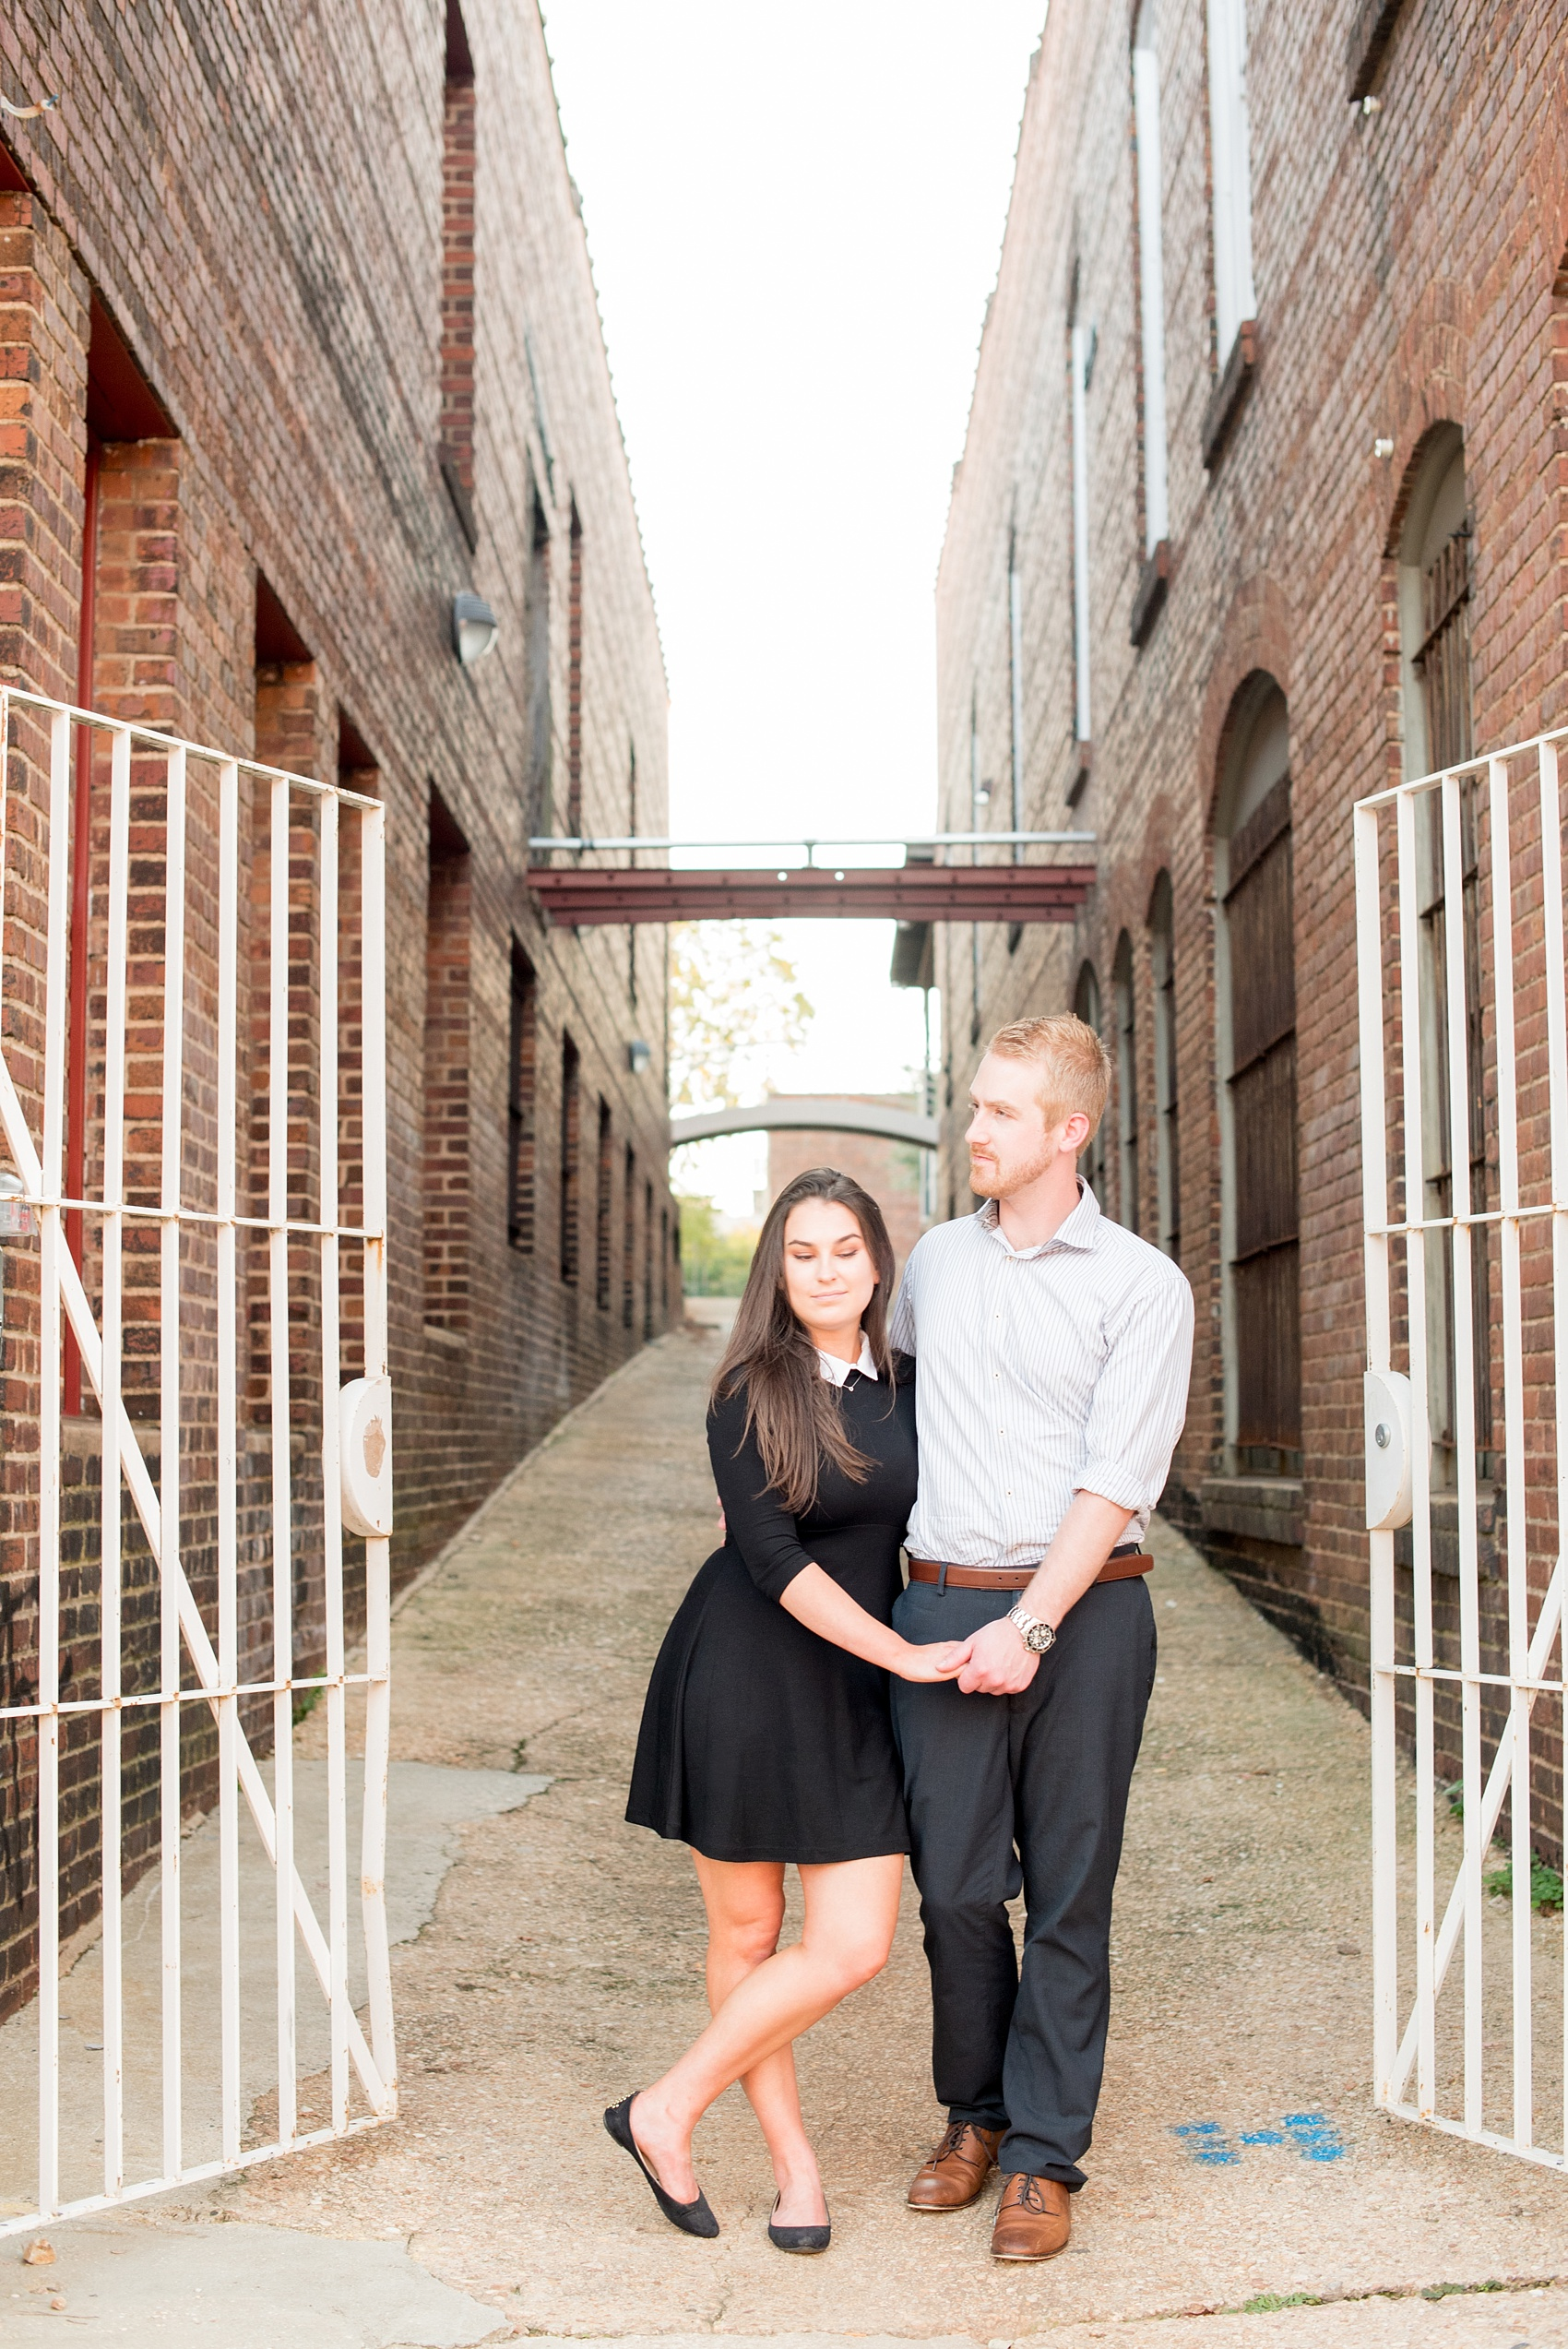 Mikkel Paige Photography photos of a downtown Raleigh engagement session.